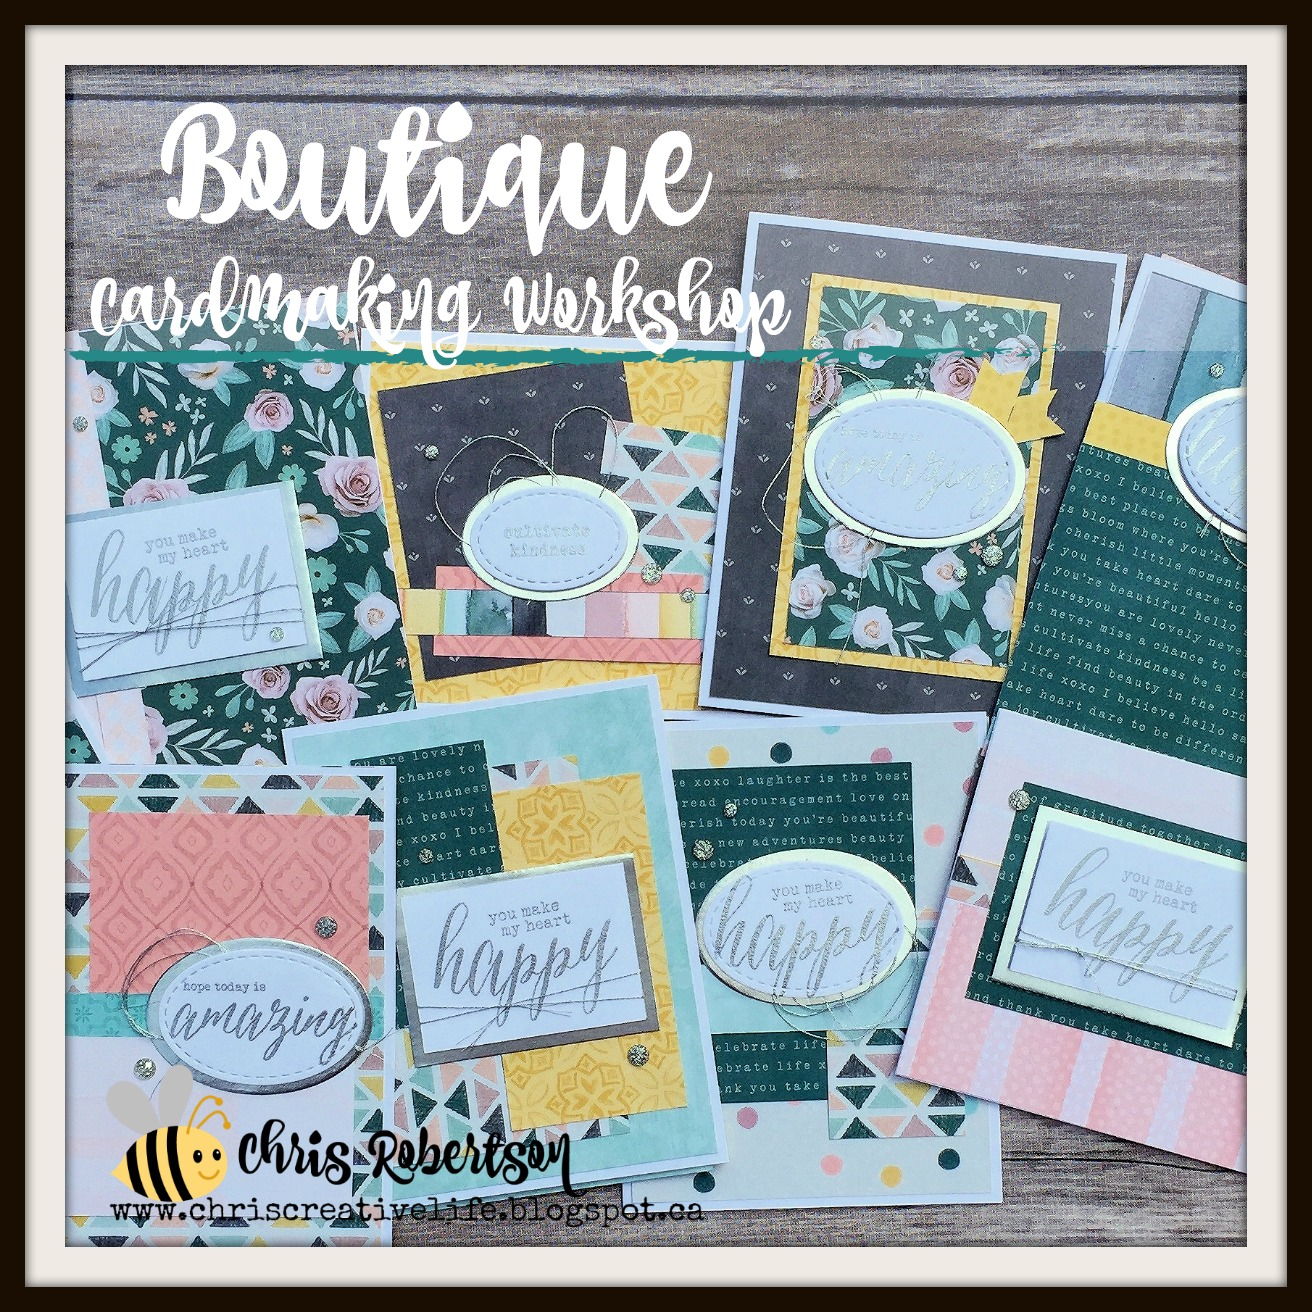 Boutique Cardmaking Workshop